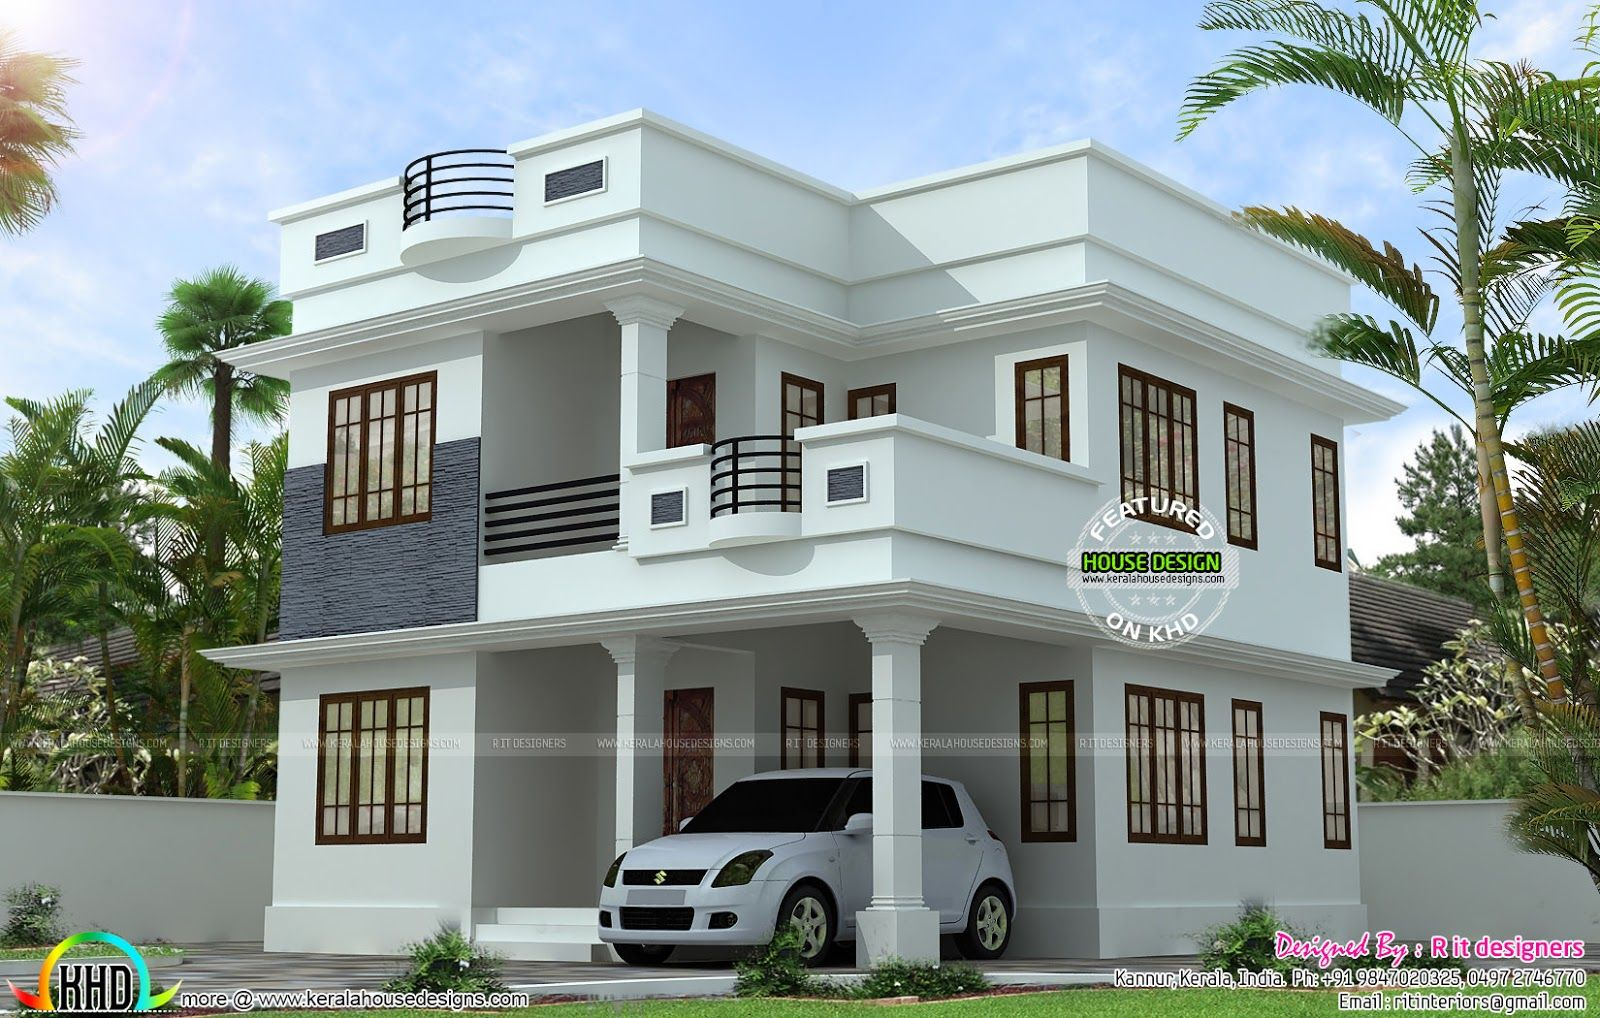 House Desing neat and simple small house plan - kerala home design and floor